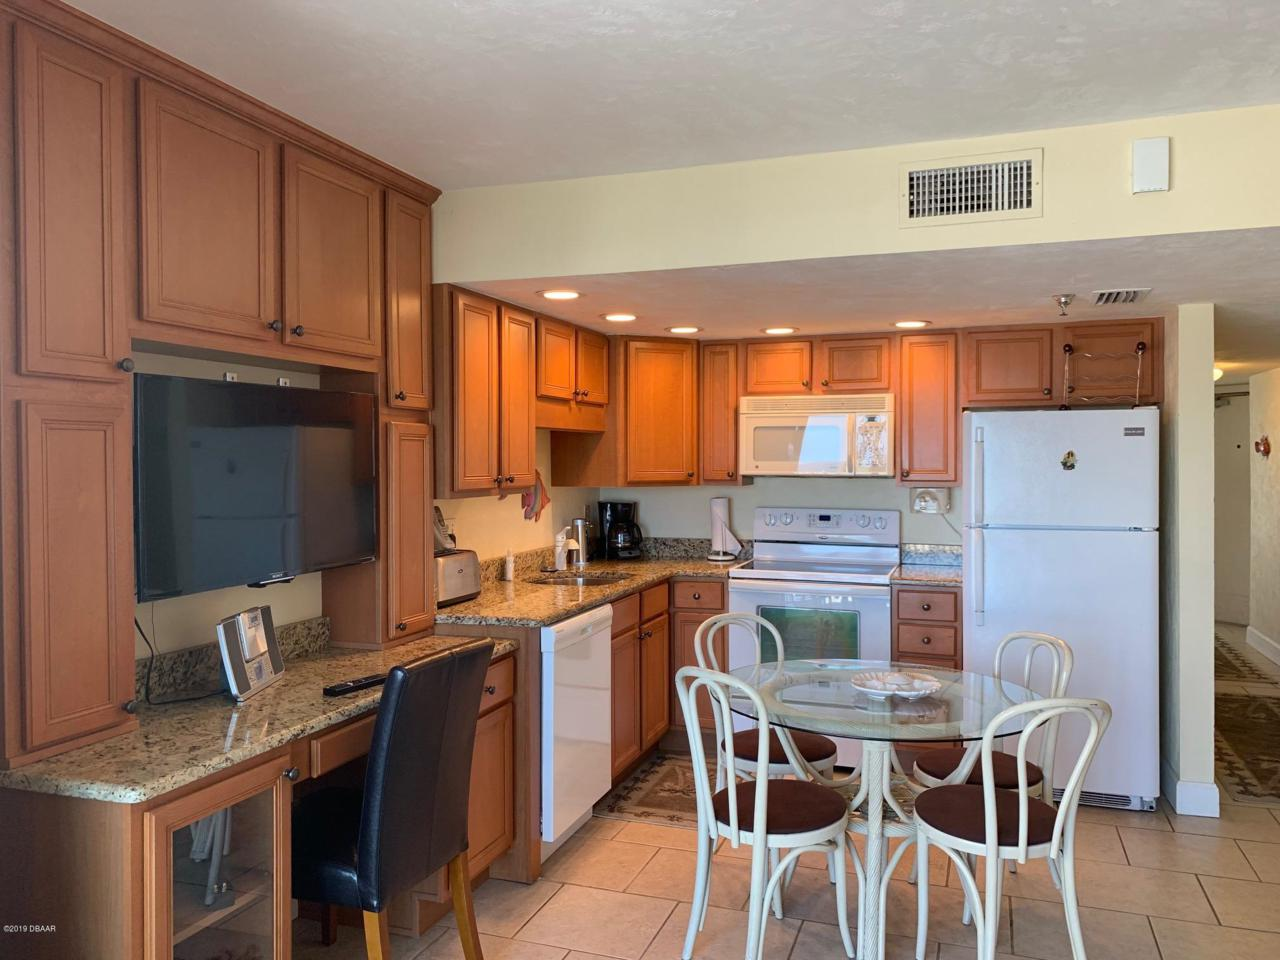 https://bt-photos.global.ssl.fastly.net/daytonabeach/1280_boomver_1_1057614-2.jpg